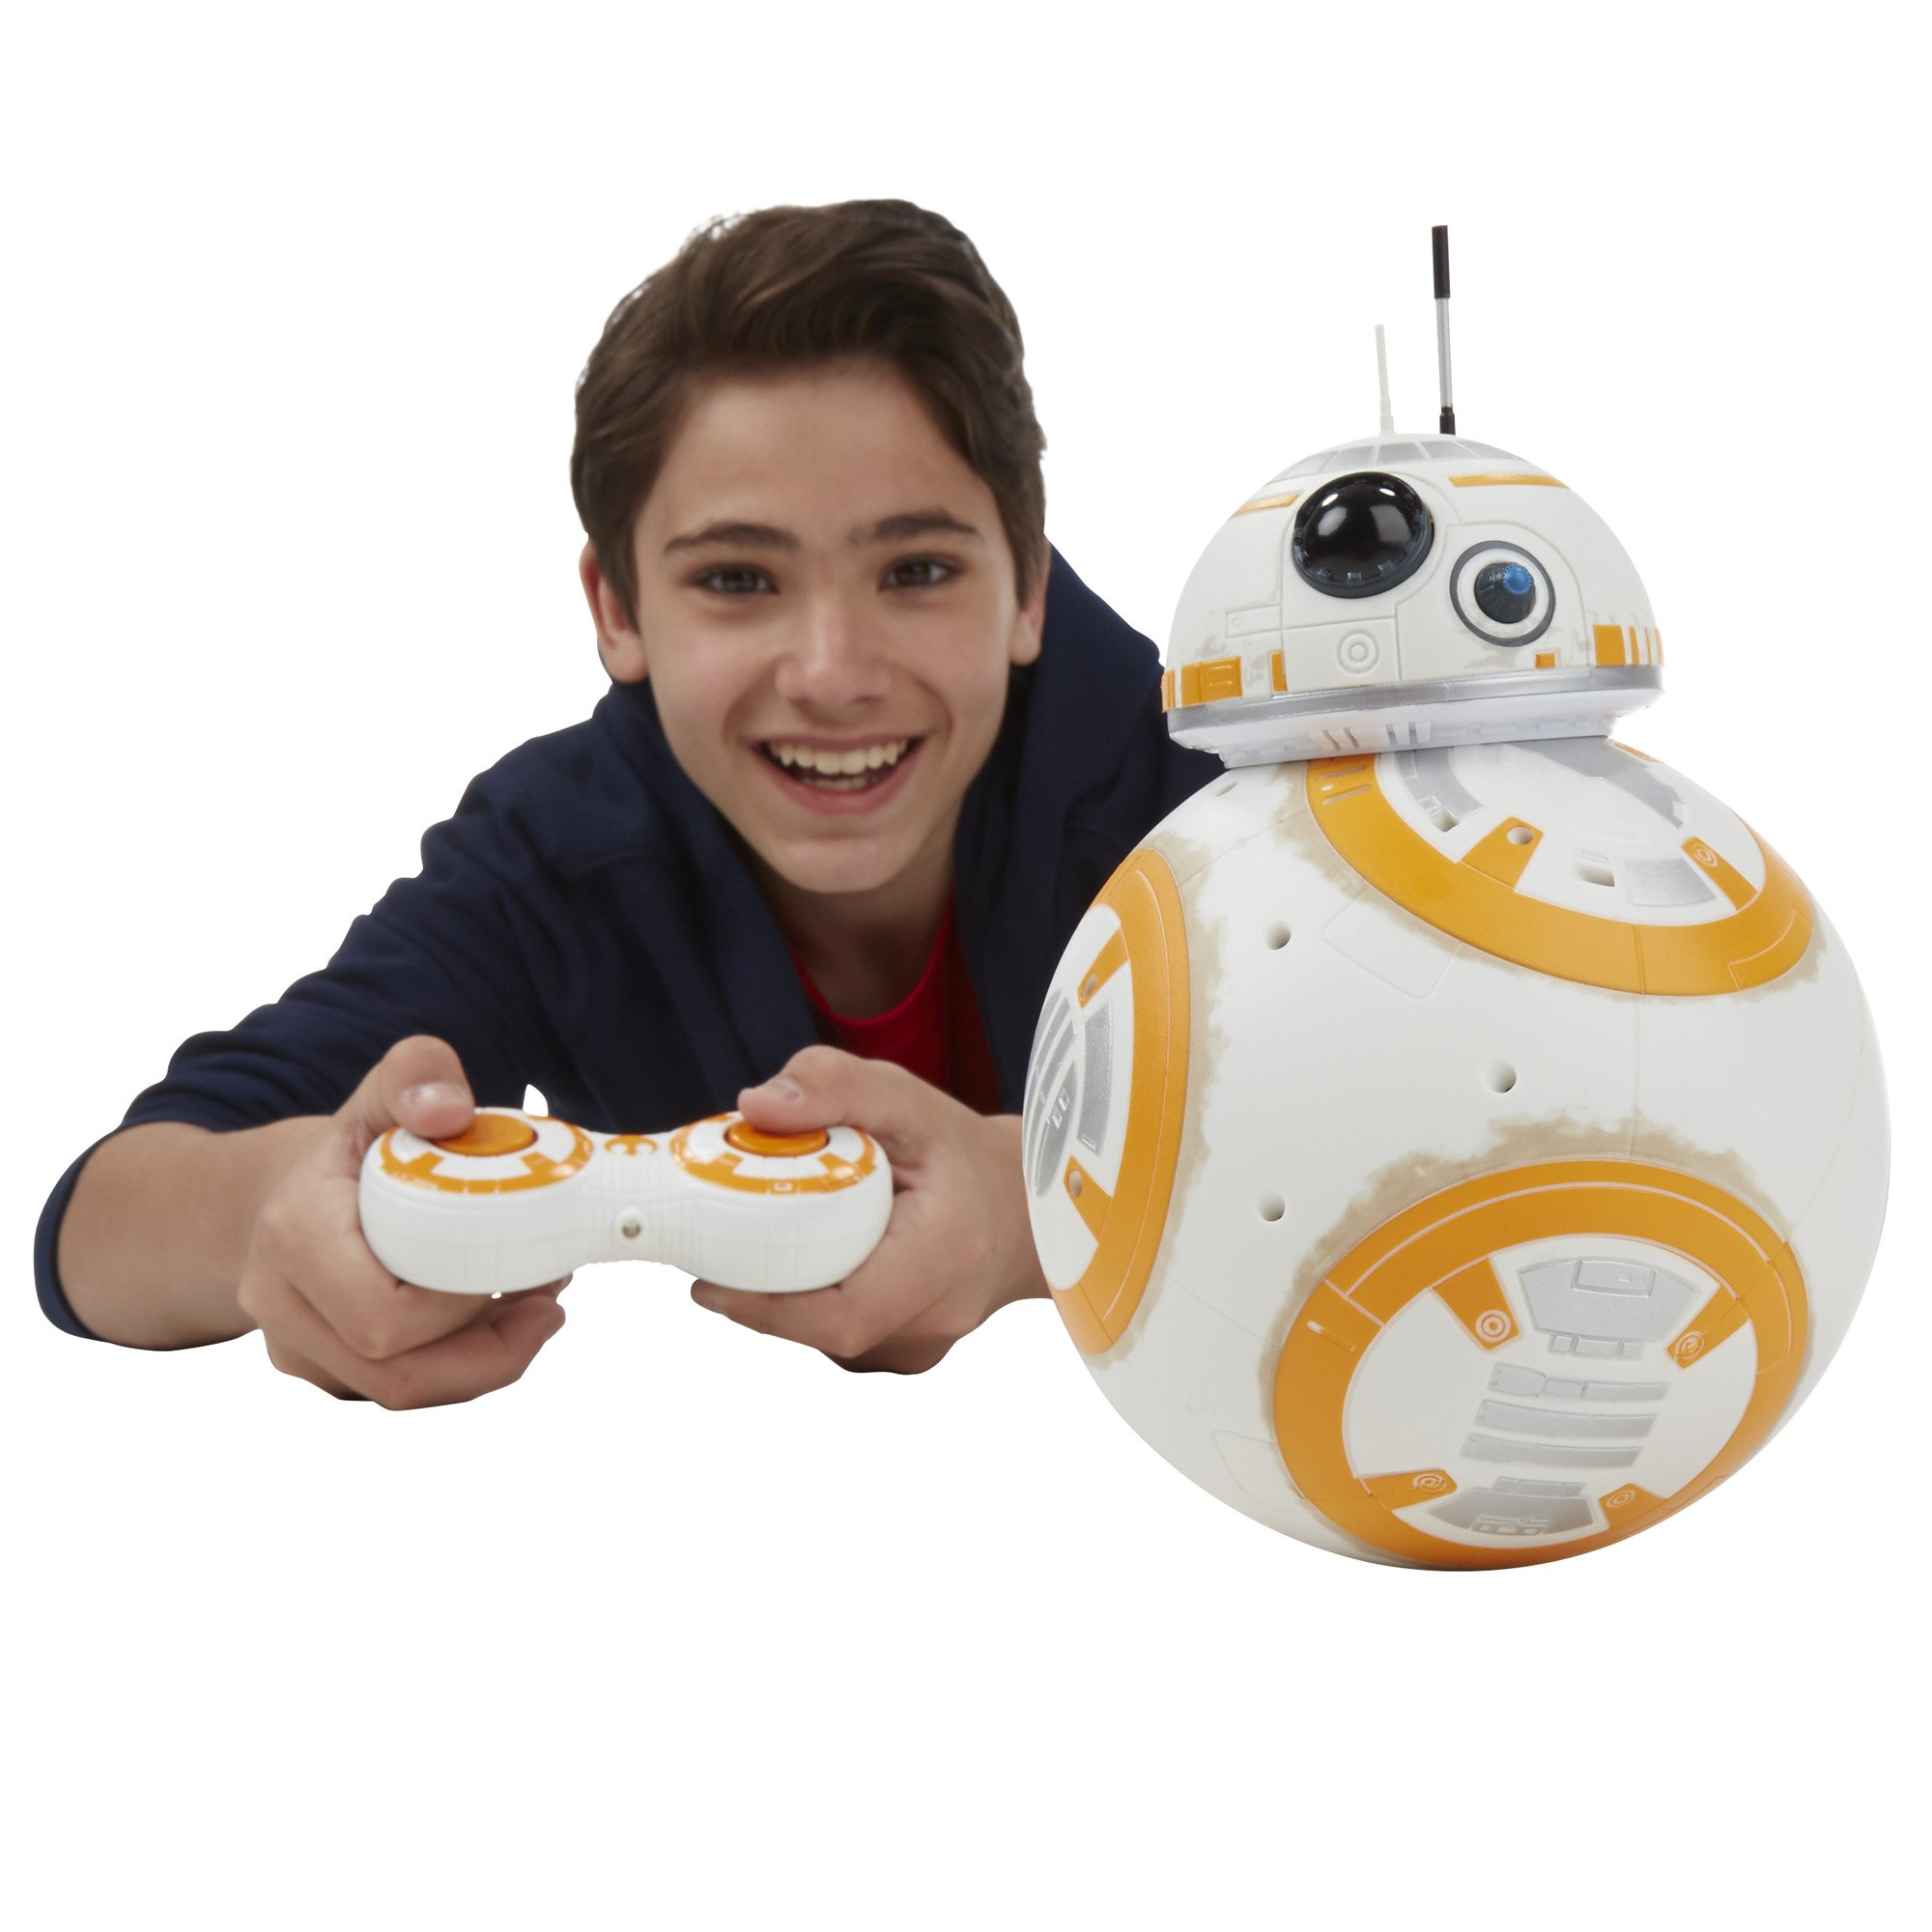 Star Wars The Force Awakens RC BB-8 by Star Wars (Image #4)